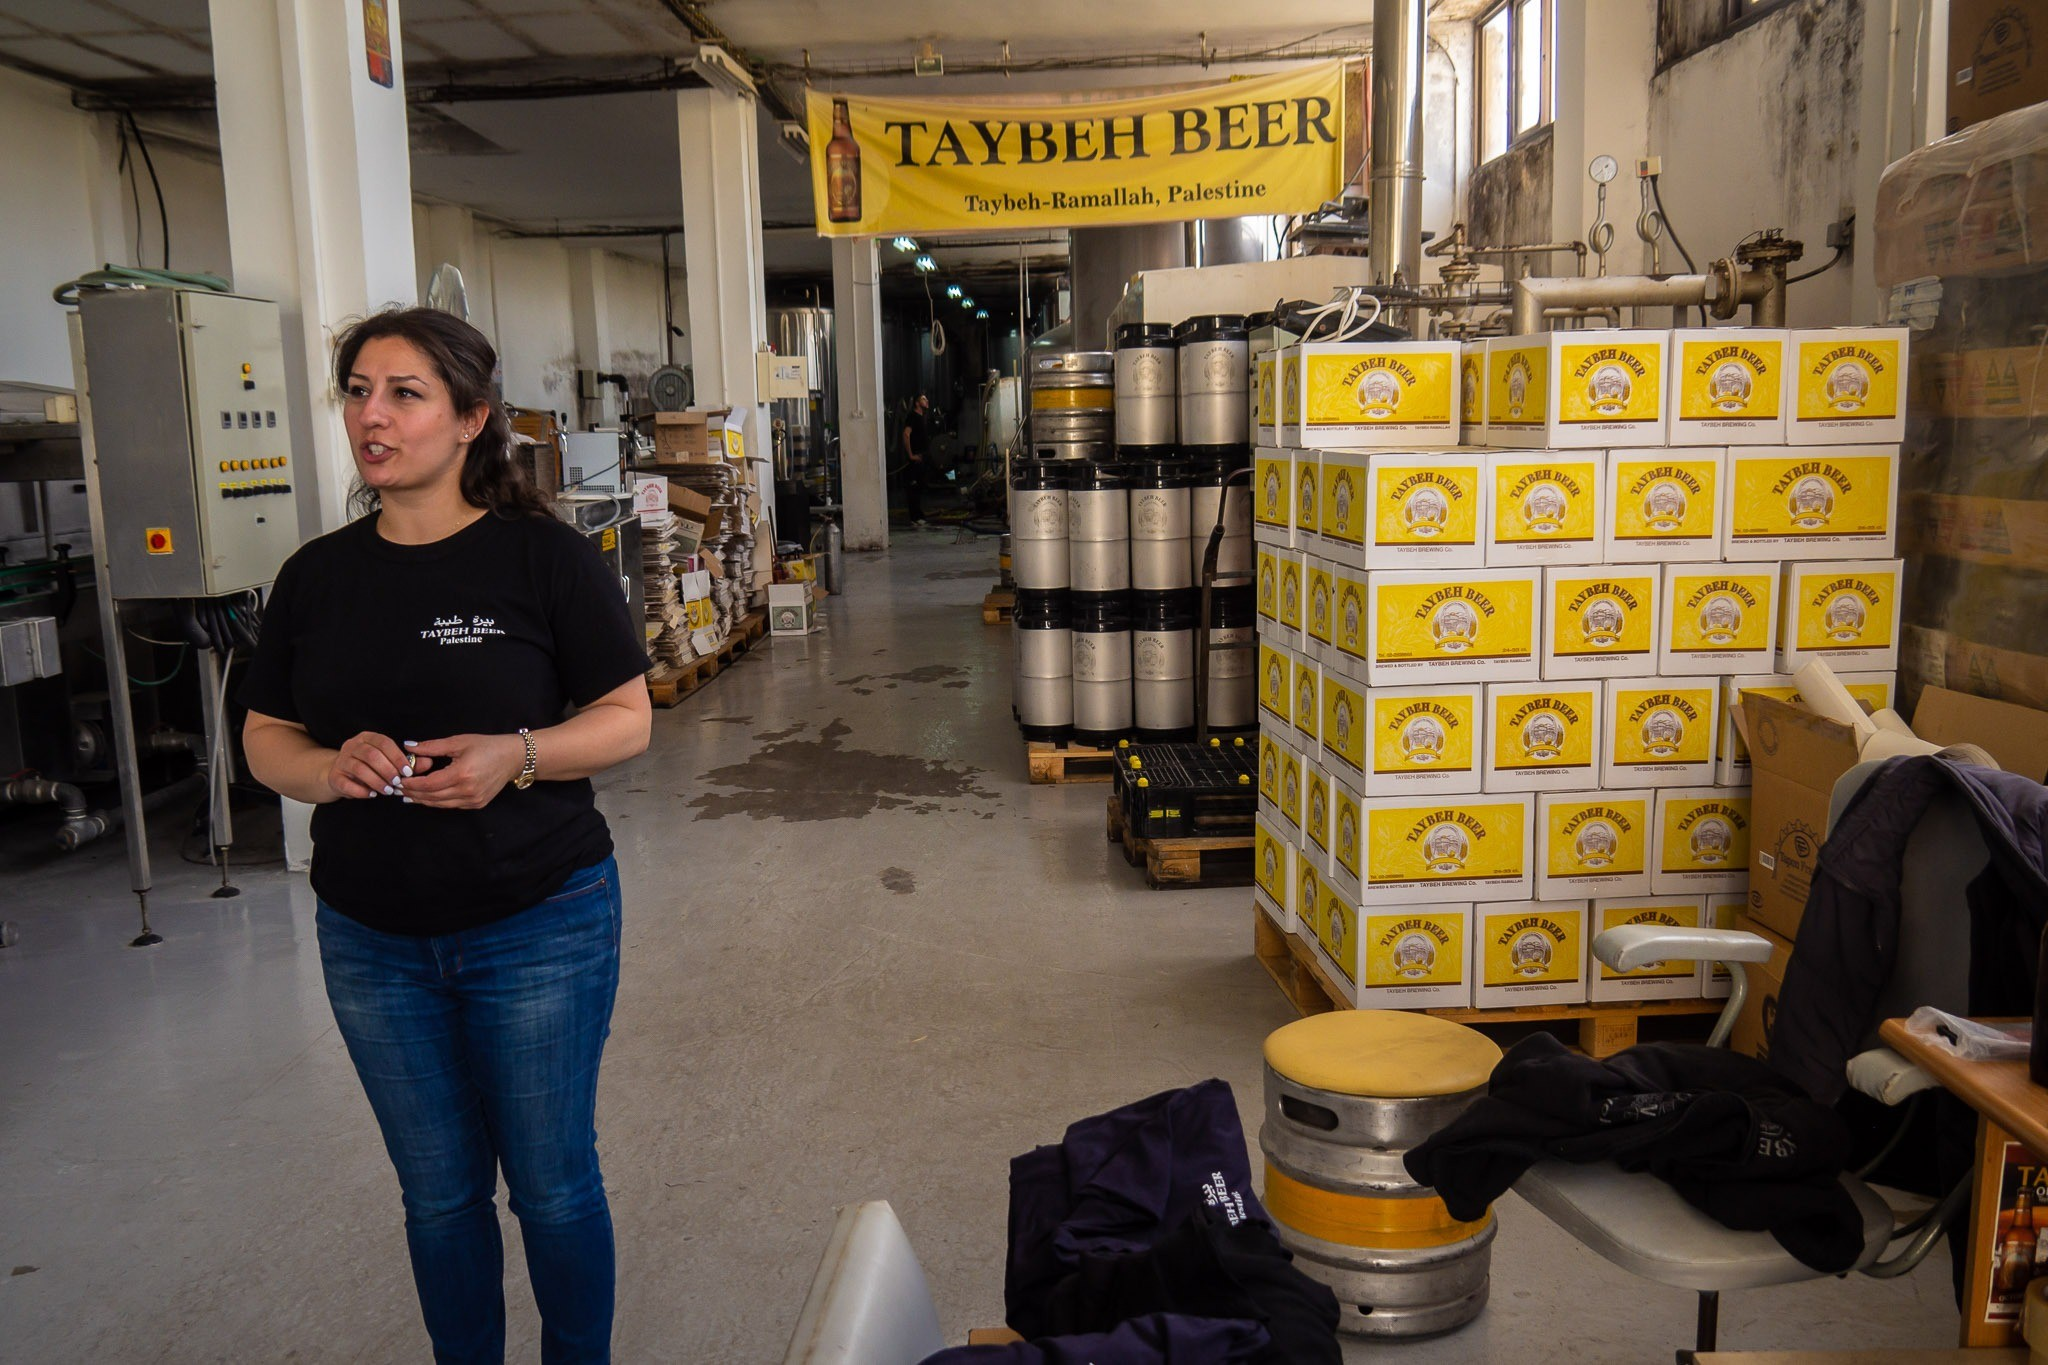 The Brewery of Taybeh